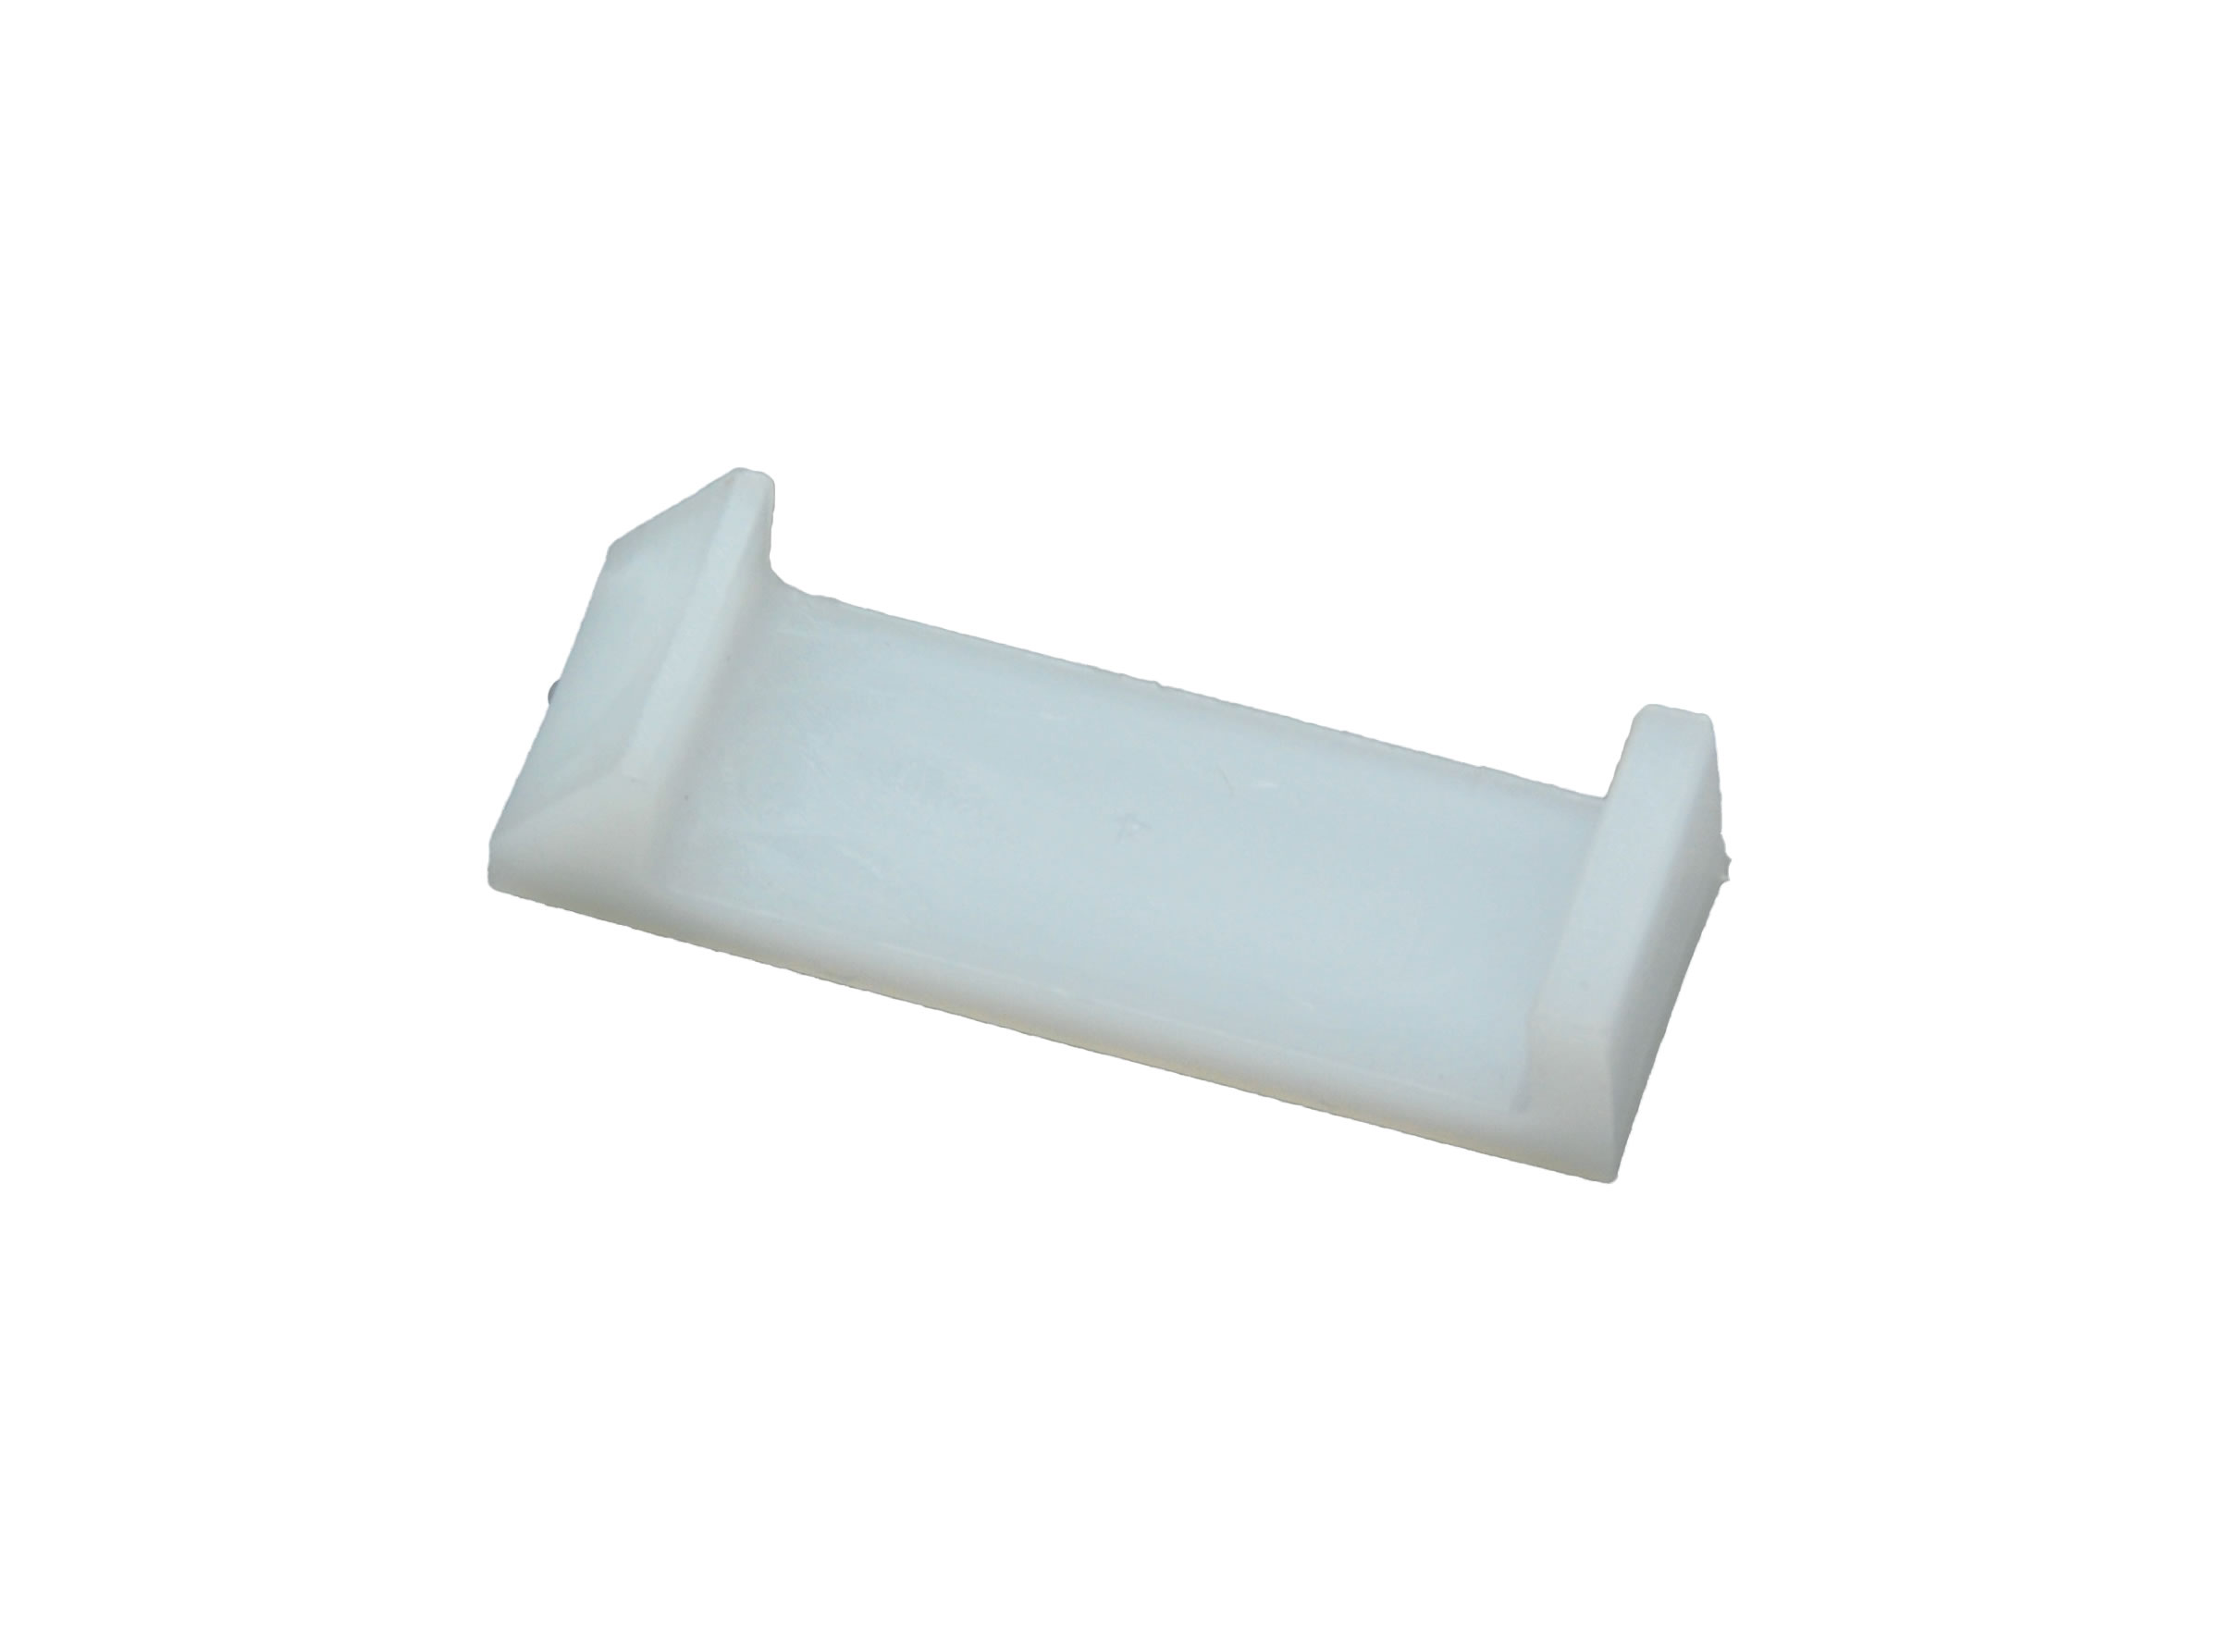 013-109 AP Products Drawer Stop Replacement For Delta Slide Rail